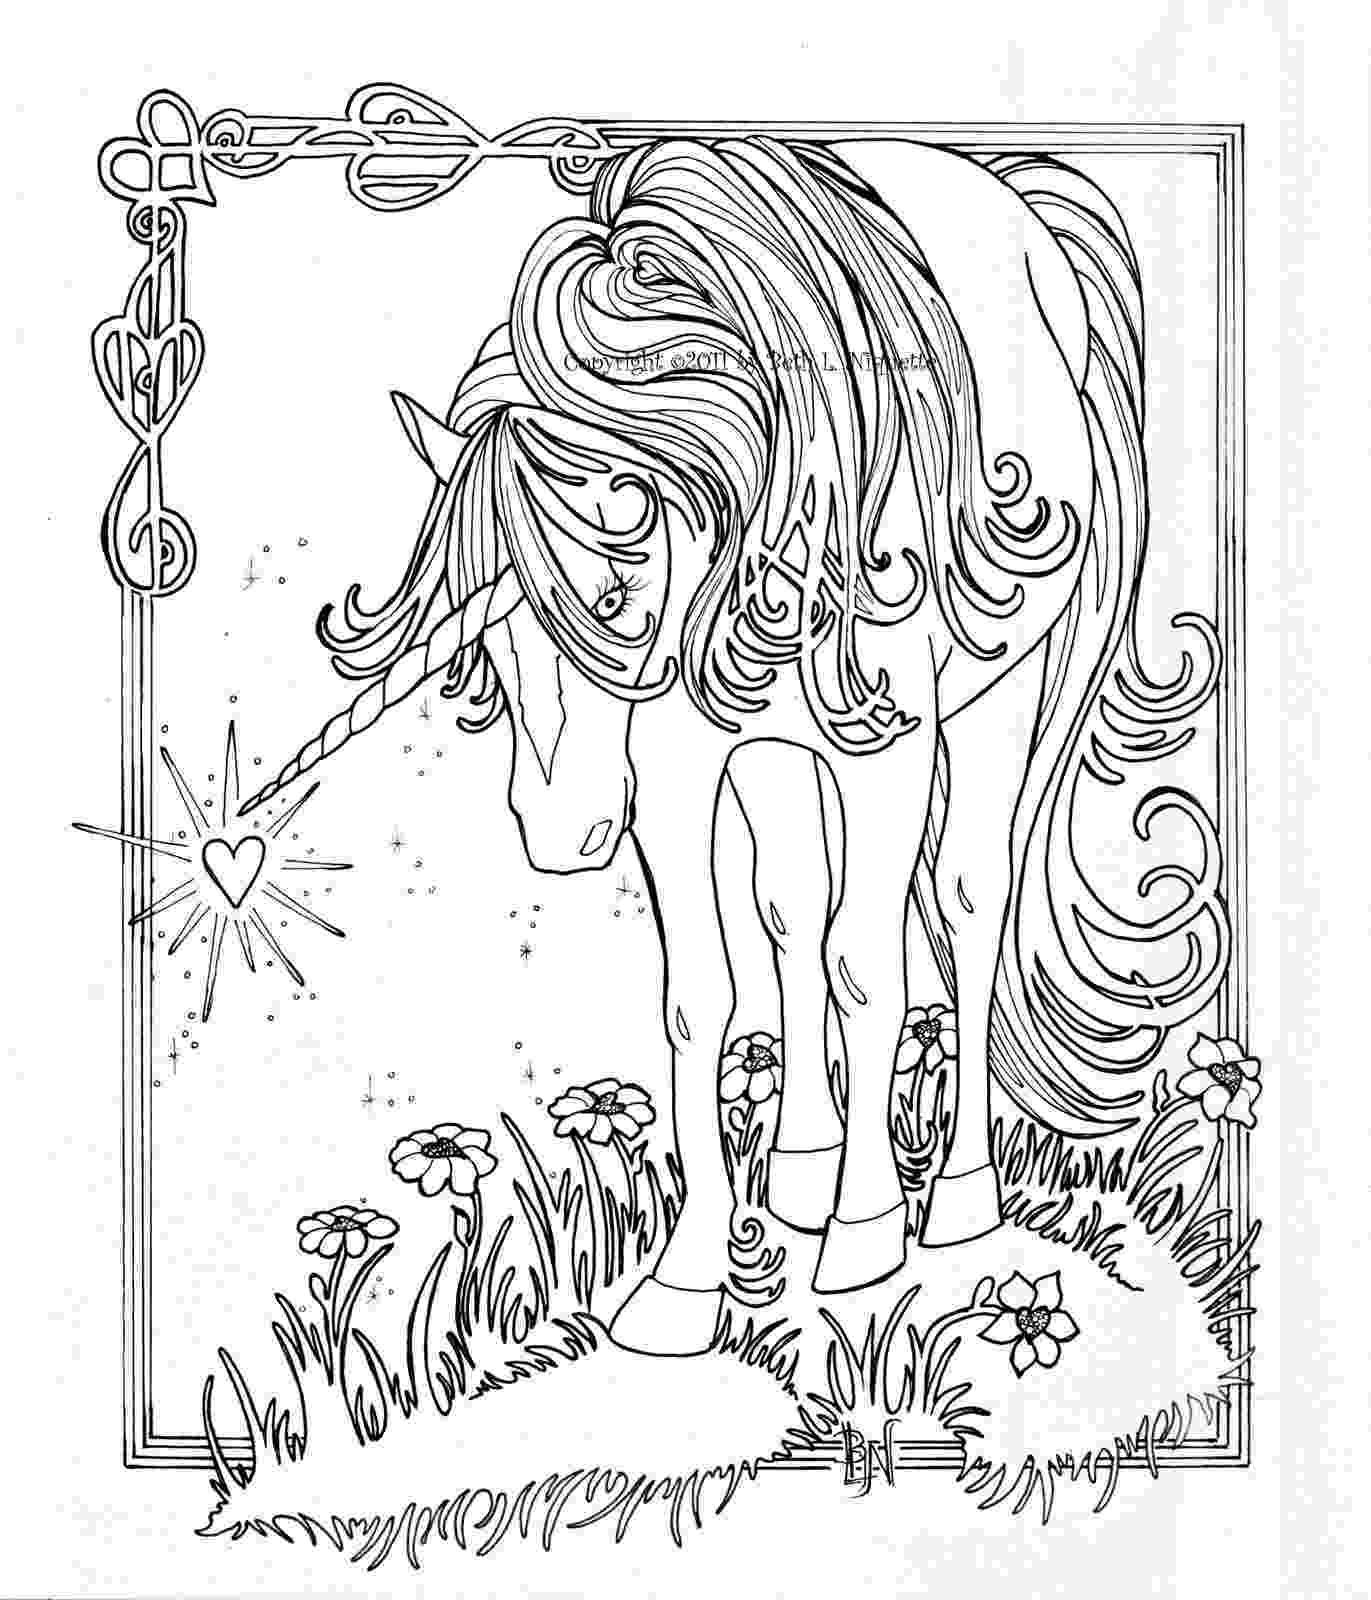 unicorn coloring pages for adults beth39s artworx august 2011 adults for coloring pages unicorn